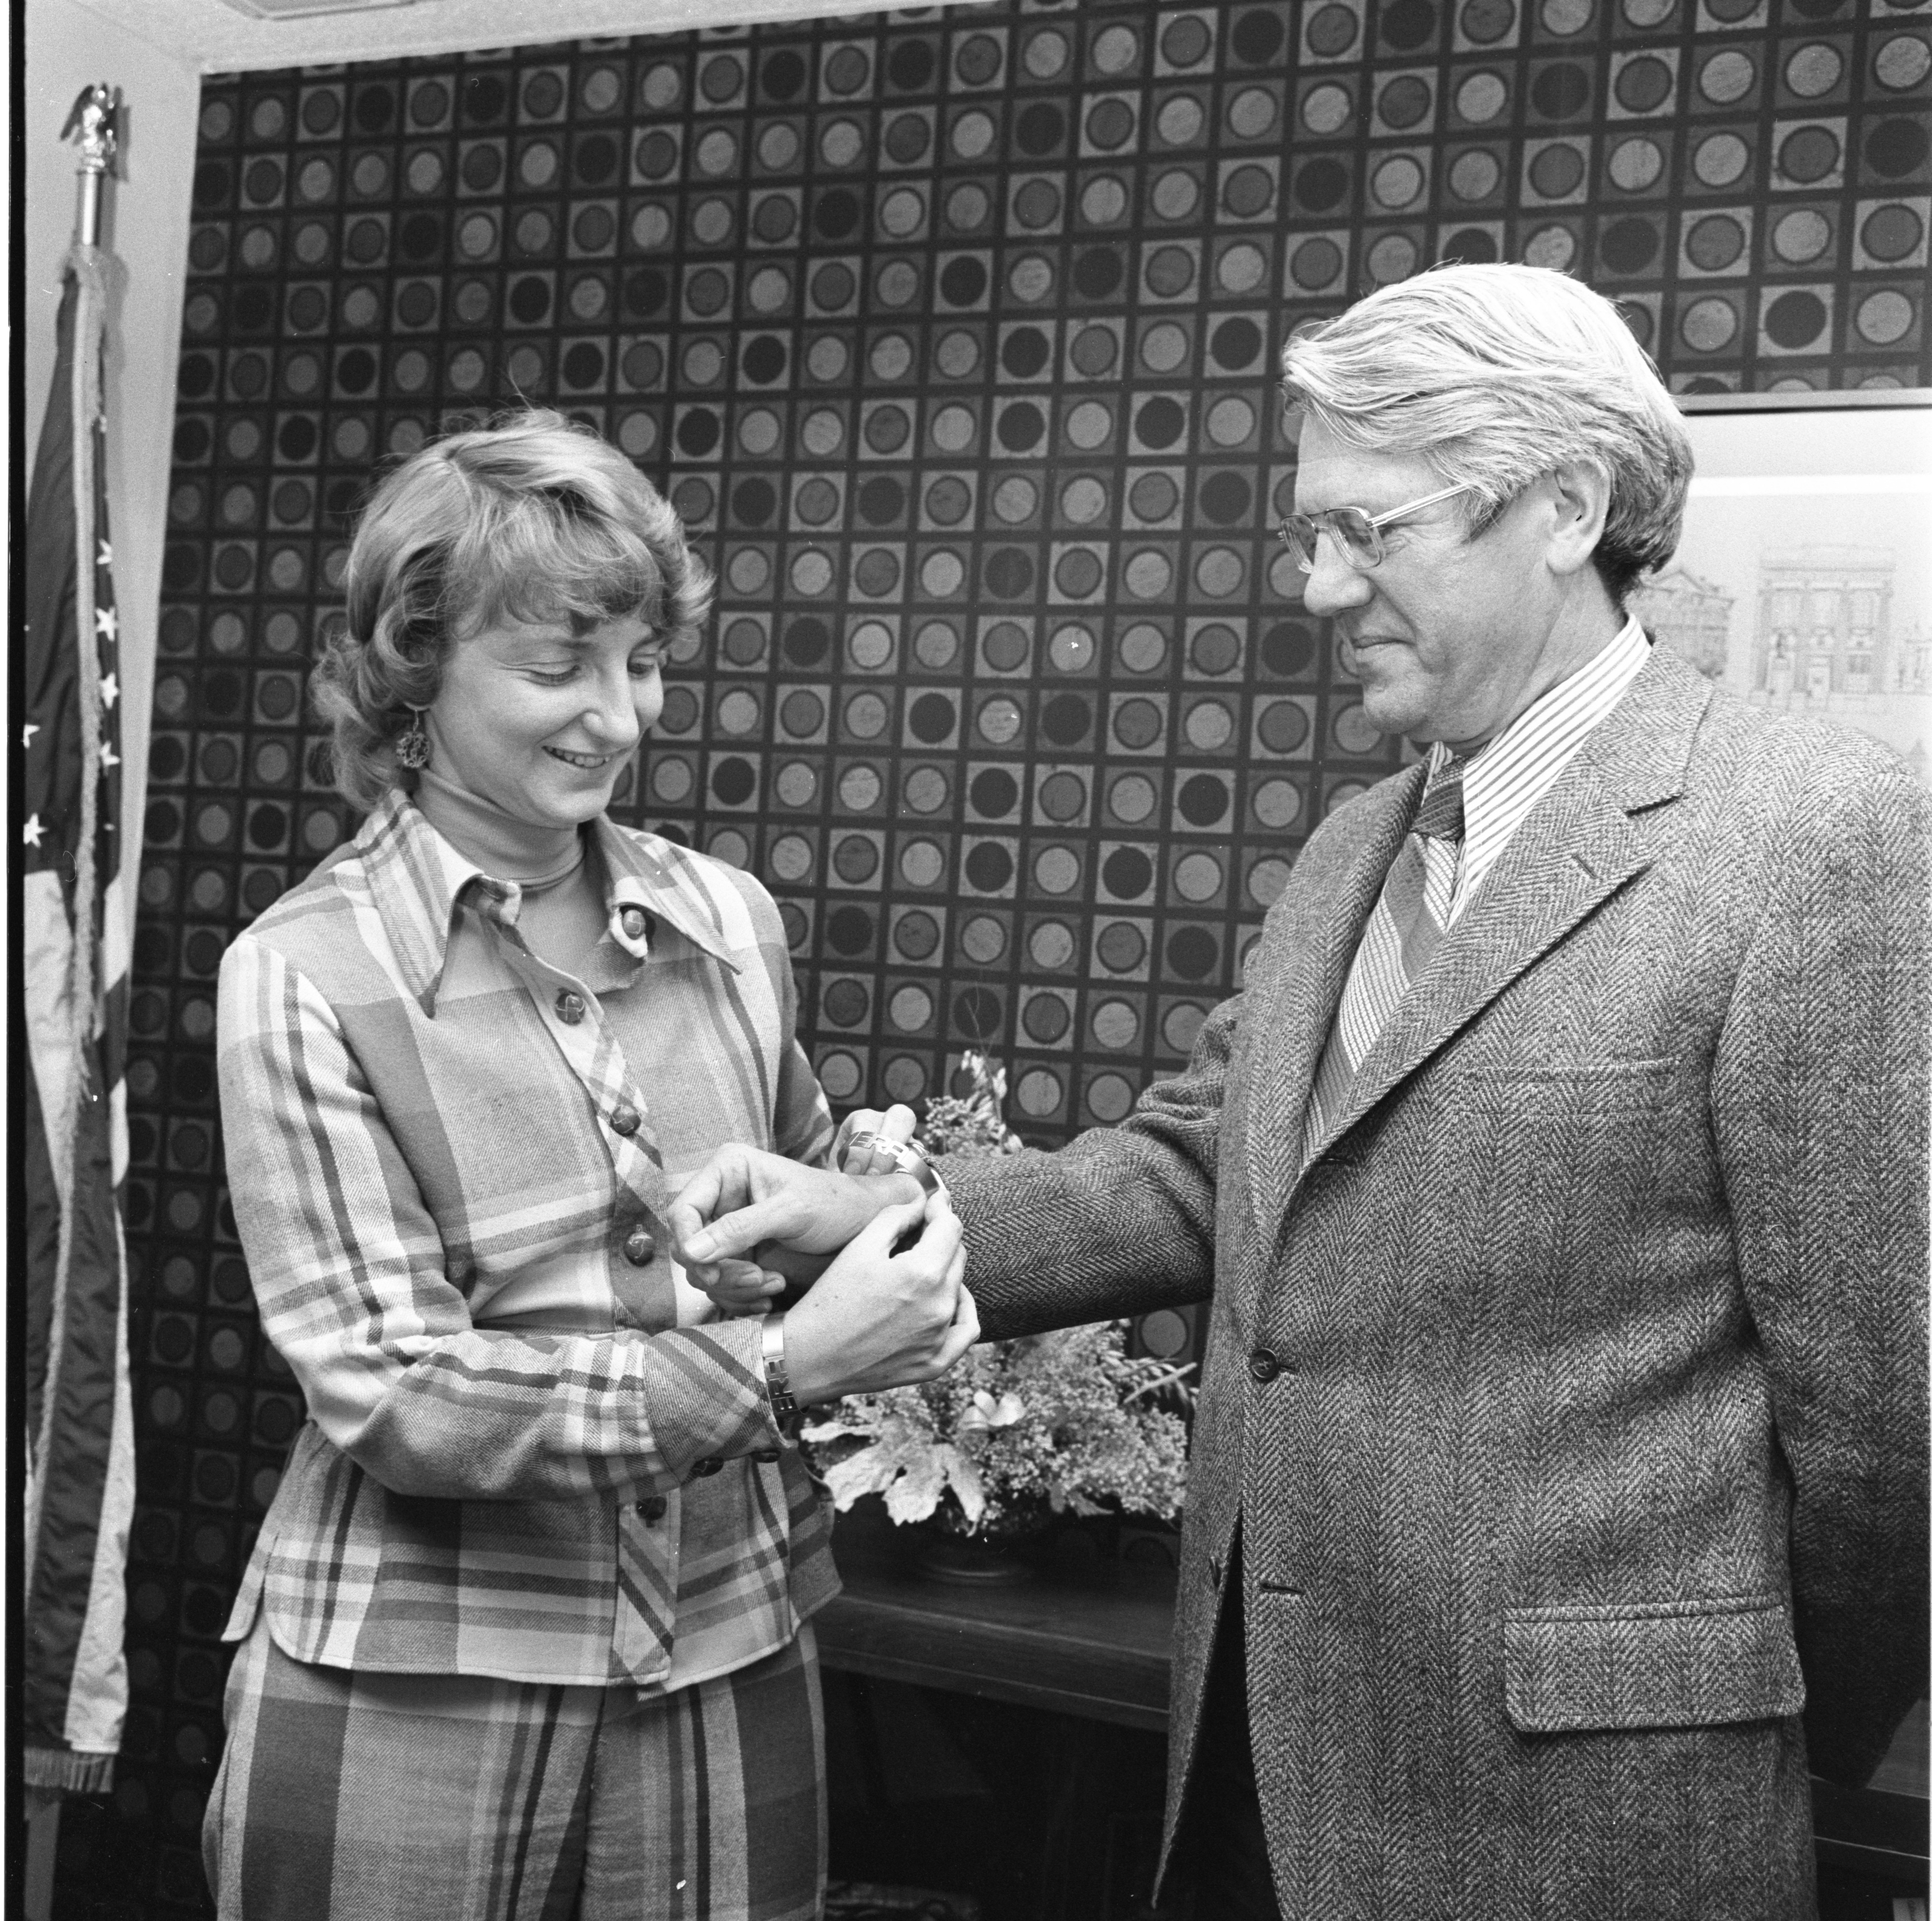 Mayor Stephenson Receives An Equal Rights Amendment Bracelet From LWV President Naomi Gottlieb, December 1973 image